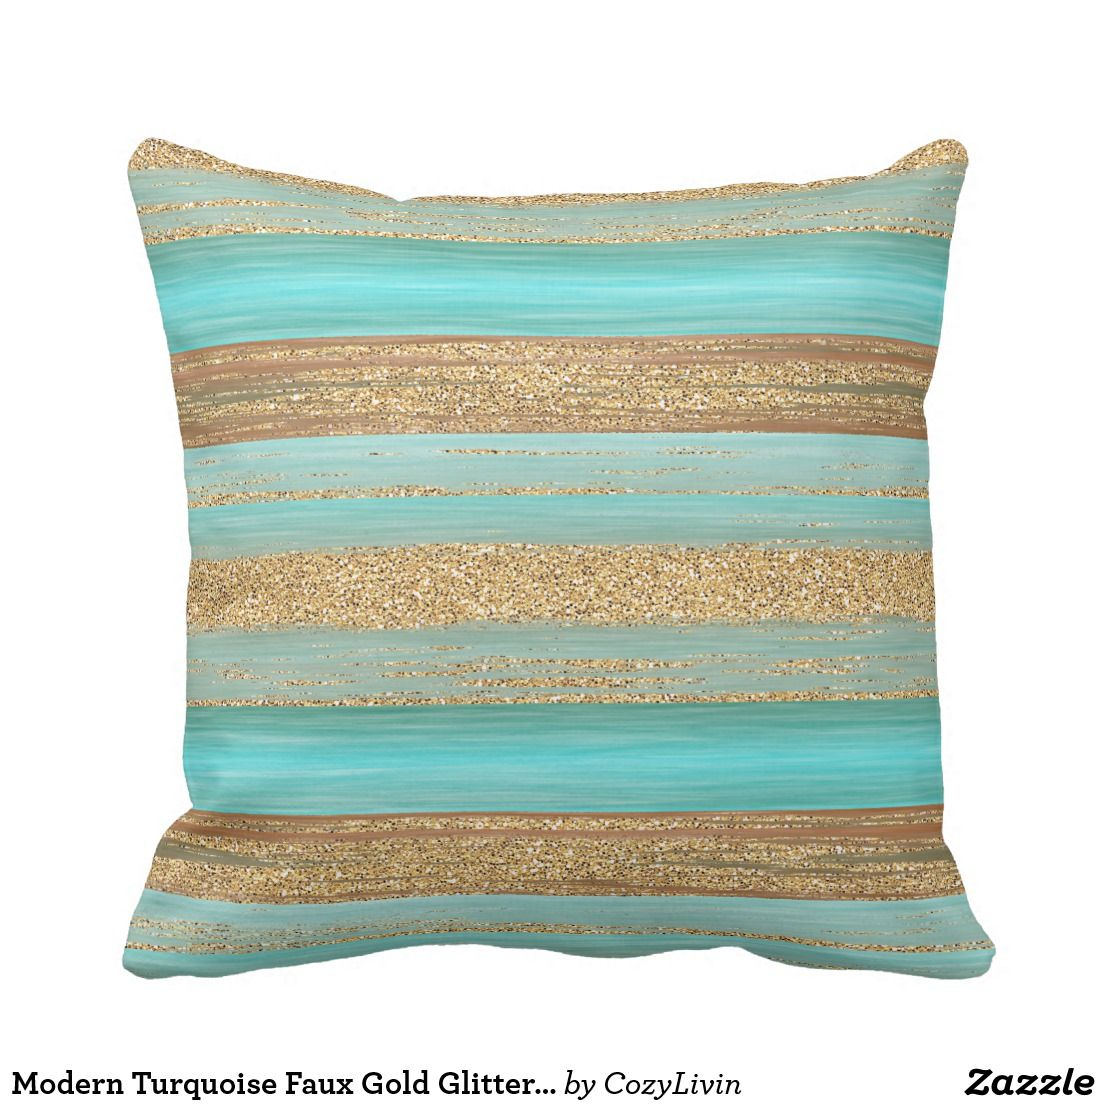 Modern Turquoise Faux Gold Glitter Stripes Pattern Outdoor Pillow   Zazzle.com images